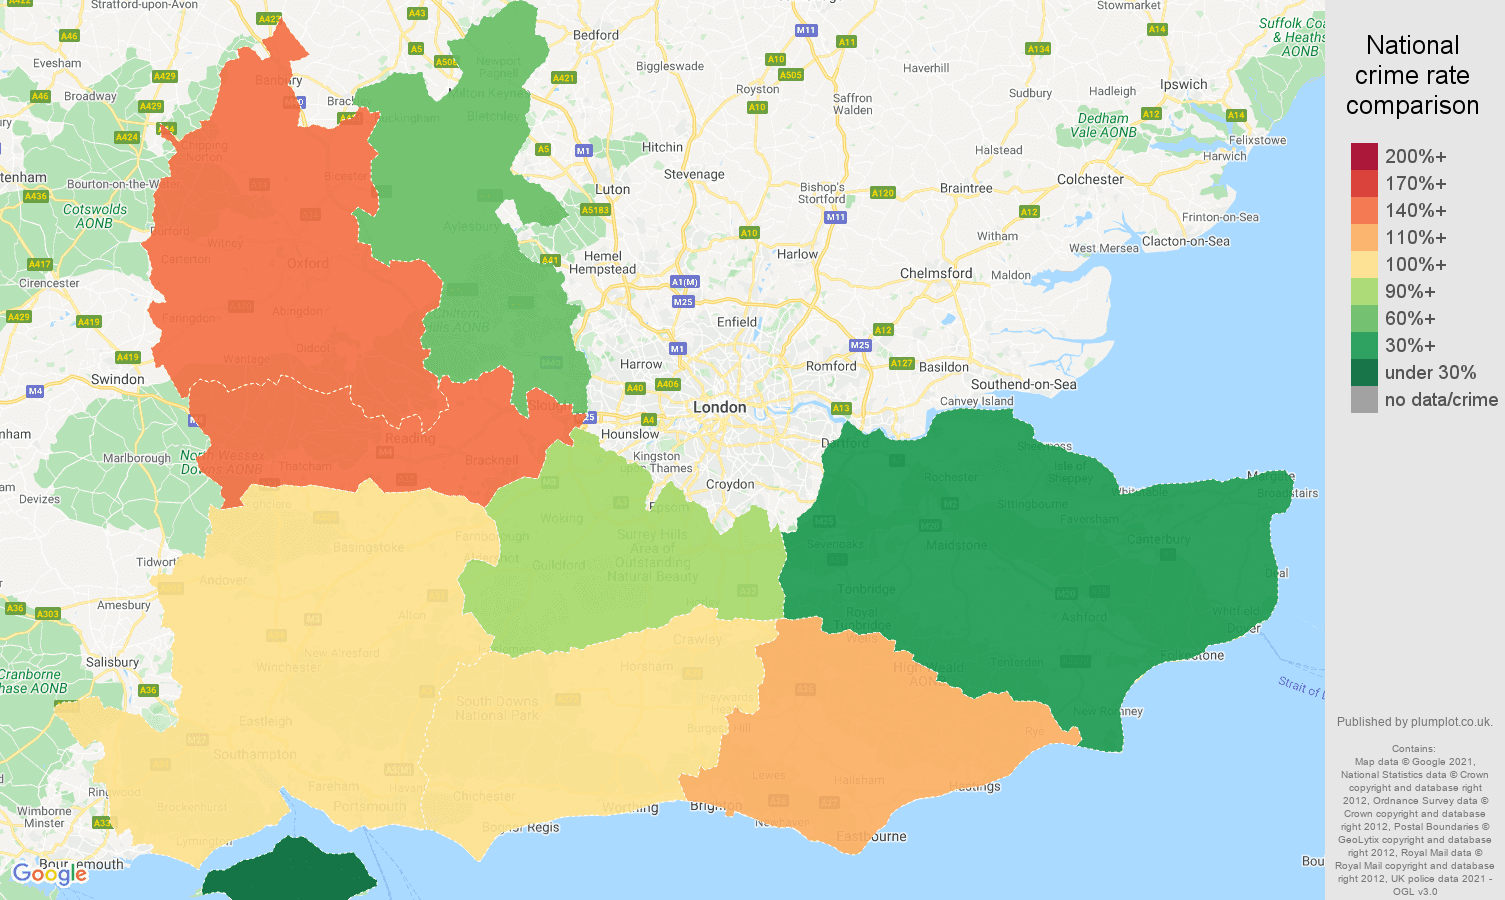 South East bicycle theft crime rate comparison map